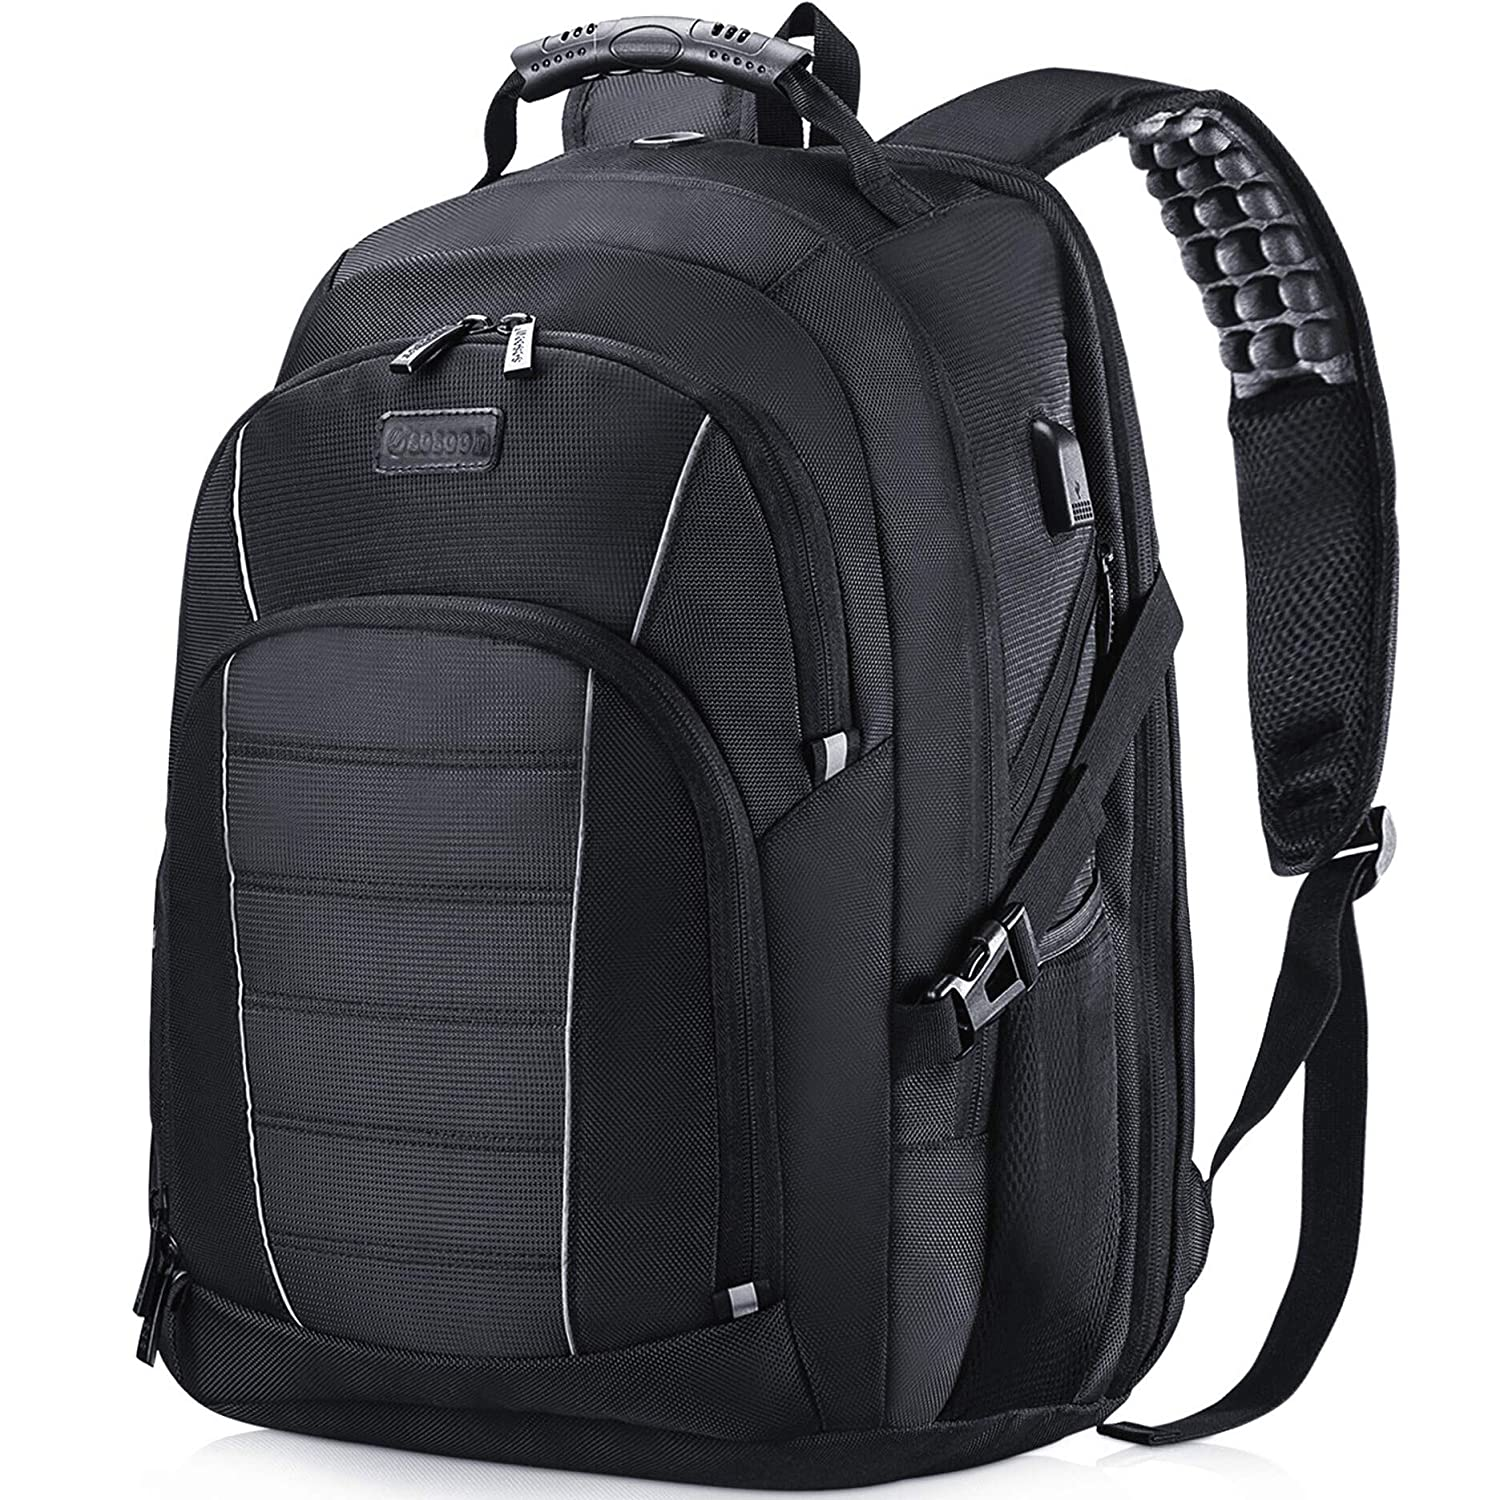 Black 15.6-17.3 Inch Water Resistant Large College//High School Bags for Boys//Men//Women Laptop Backpack Anti-Theft Business Travel Work Computer Rucksack with USB Charging Port